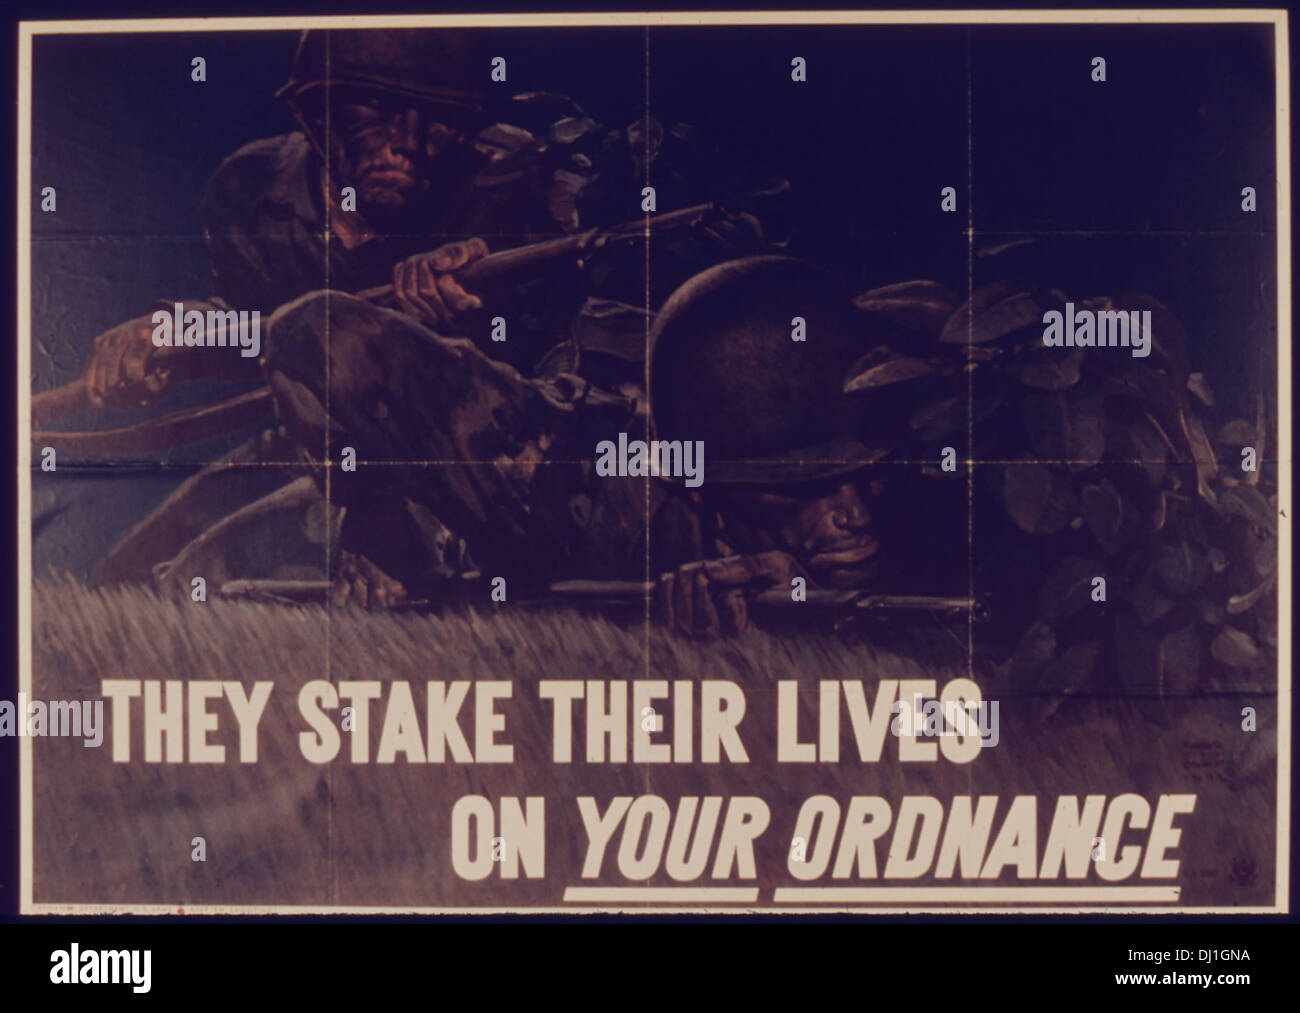 THEY STAKE THEIR LIVES ON YOUR ORDINANCE 706 - Stock Image